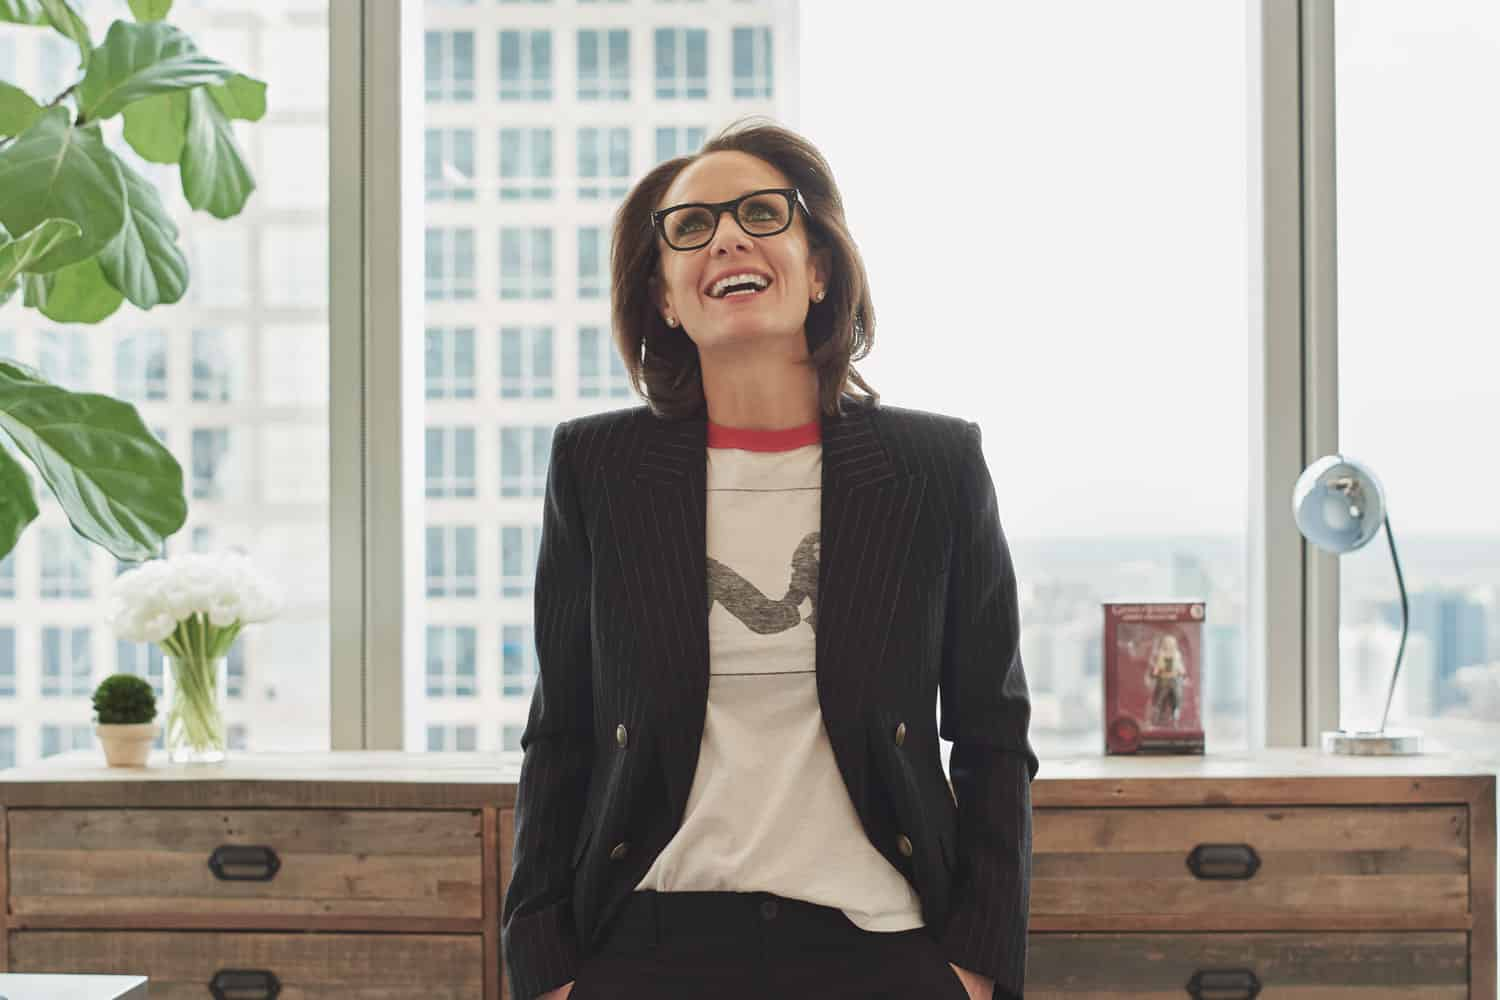 Pamela Drucker Mann on her role as the CRMO Condé Nast and More